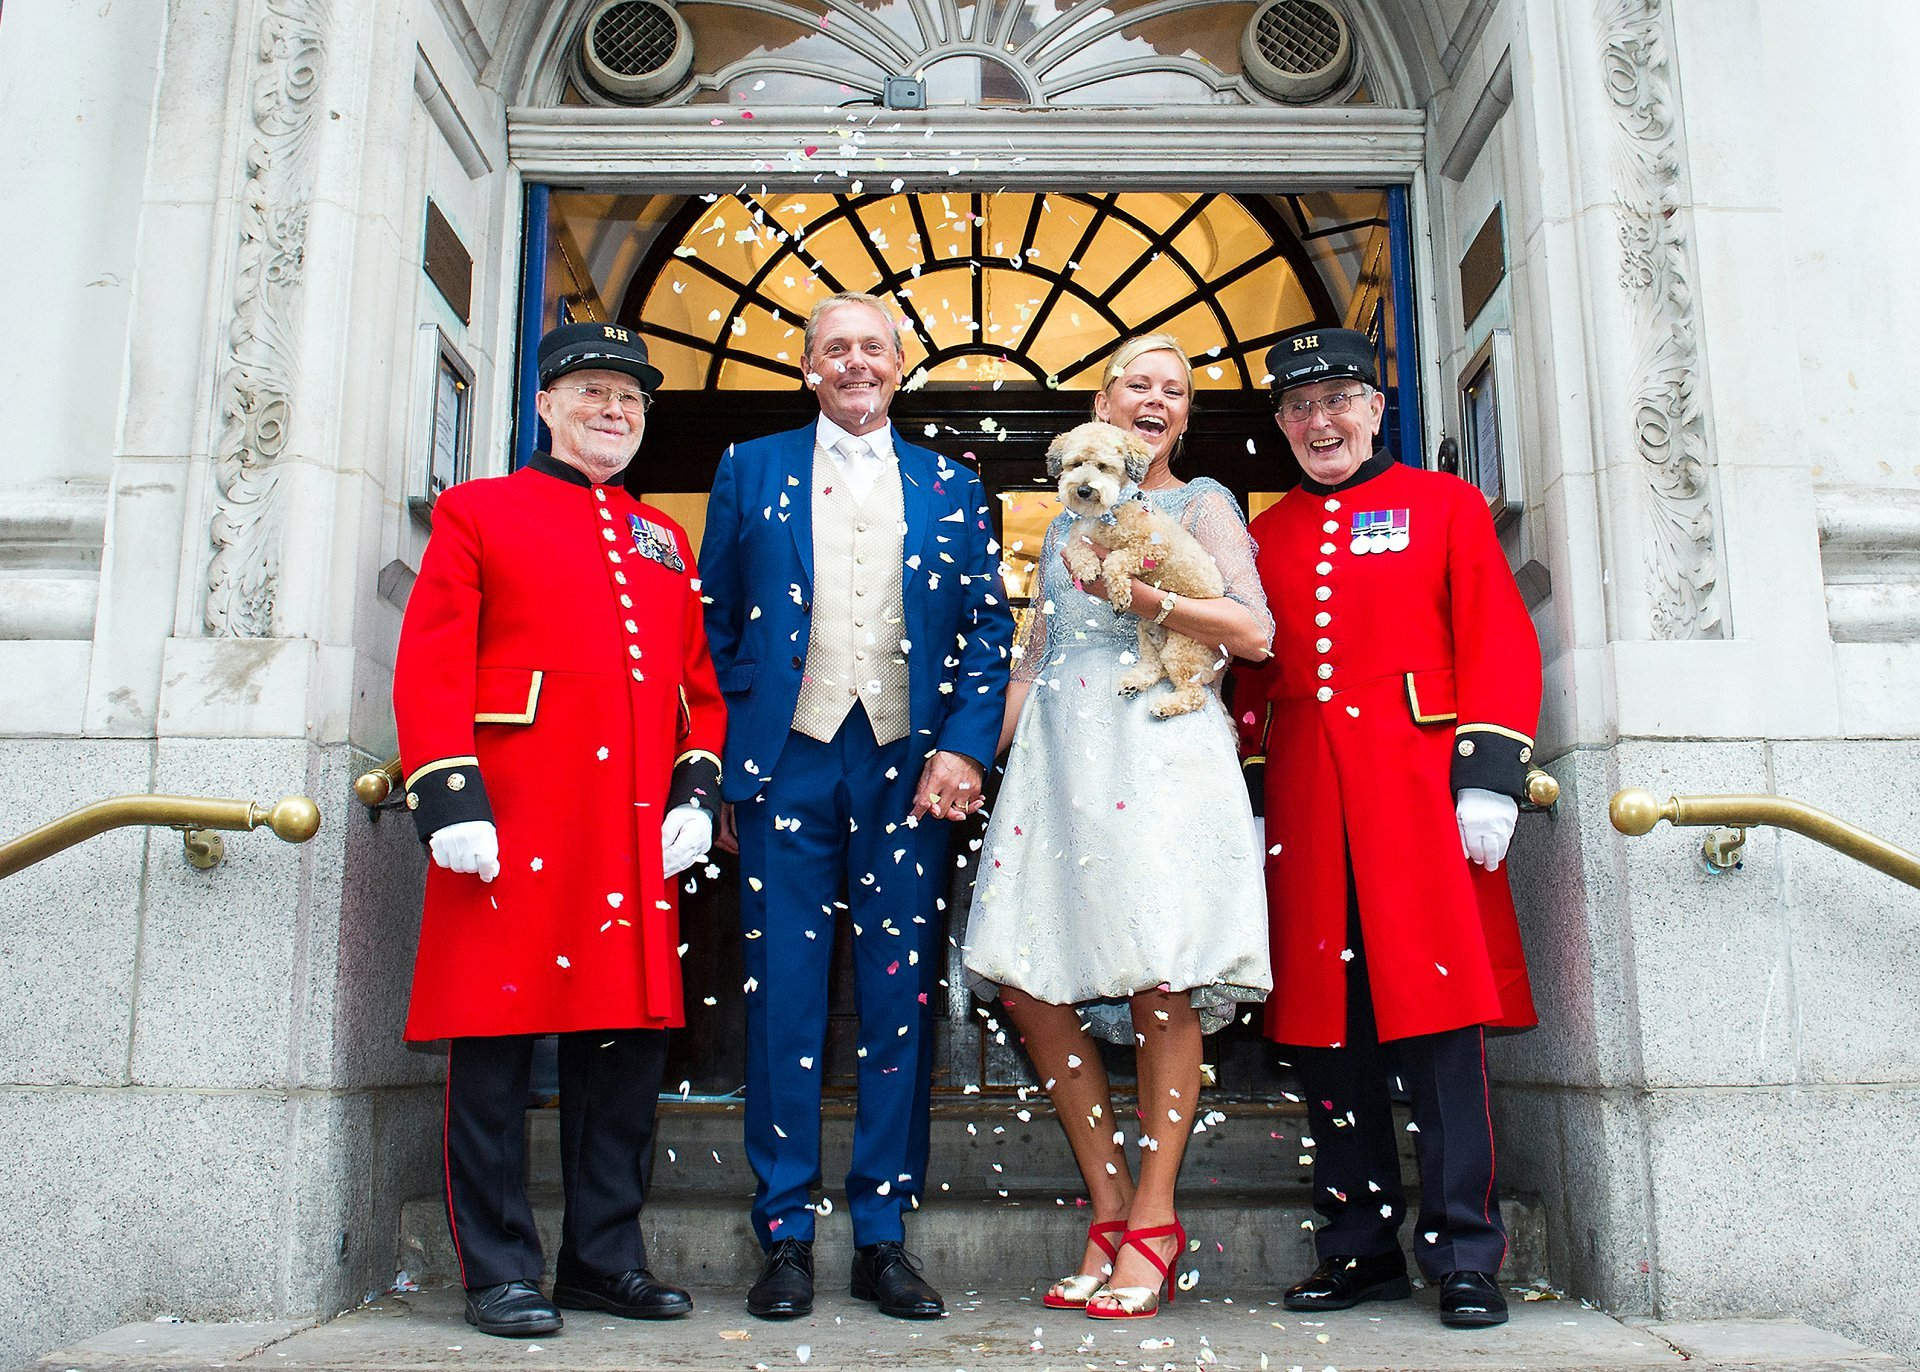 dog wedding photography london showing a bride and groom holding their little dog - a jackapoo - on the steps of chelsea register office with confetti thrown by their chelsea pensioner witnesses